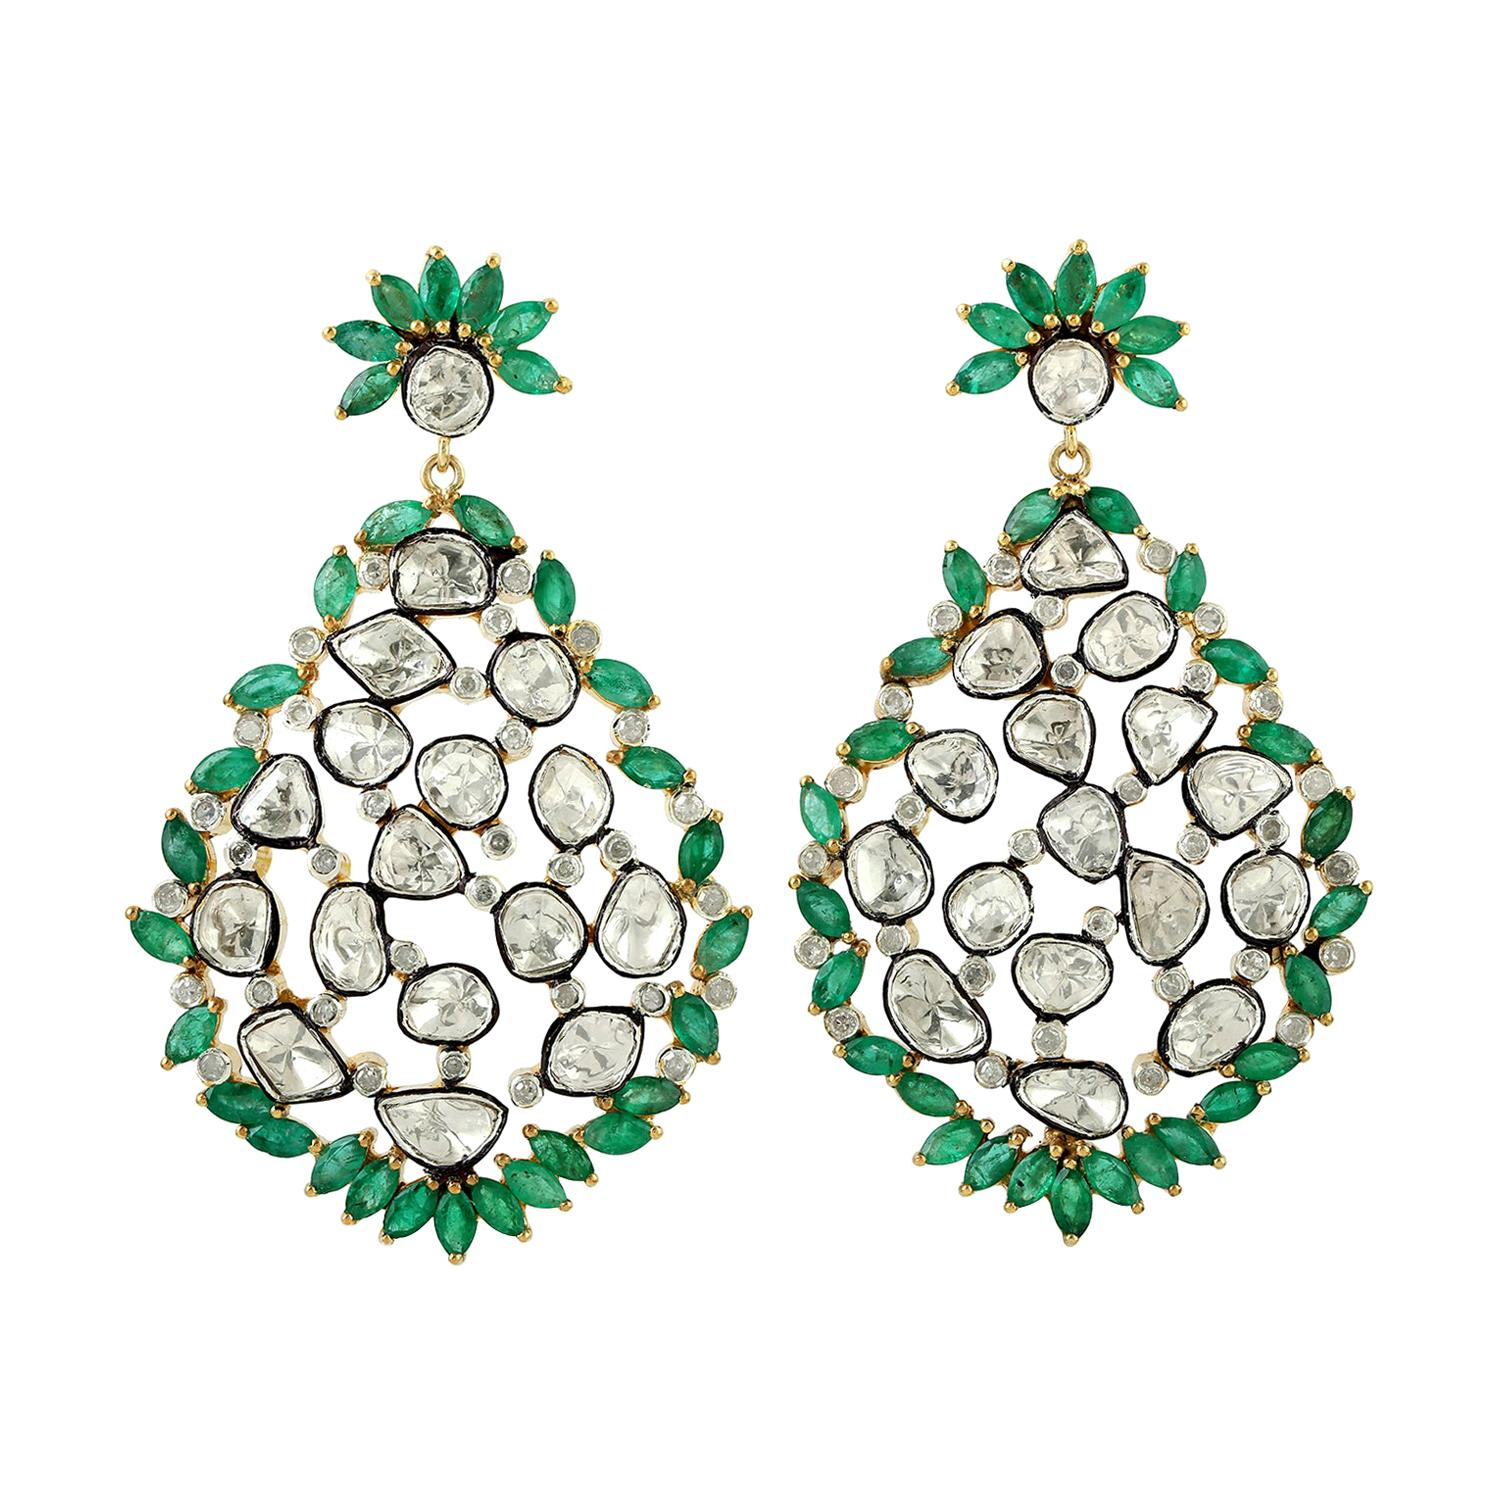 Designer Emerald and Rosecut Diamond Dangle Earring in 18K Gold and Silver